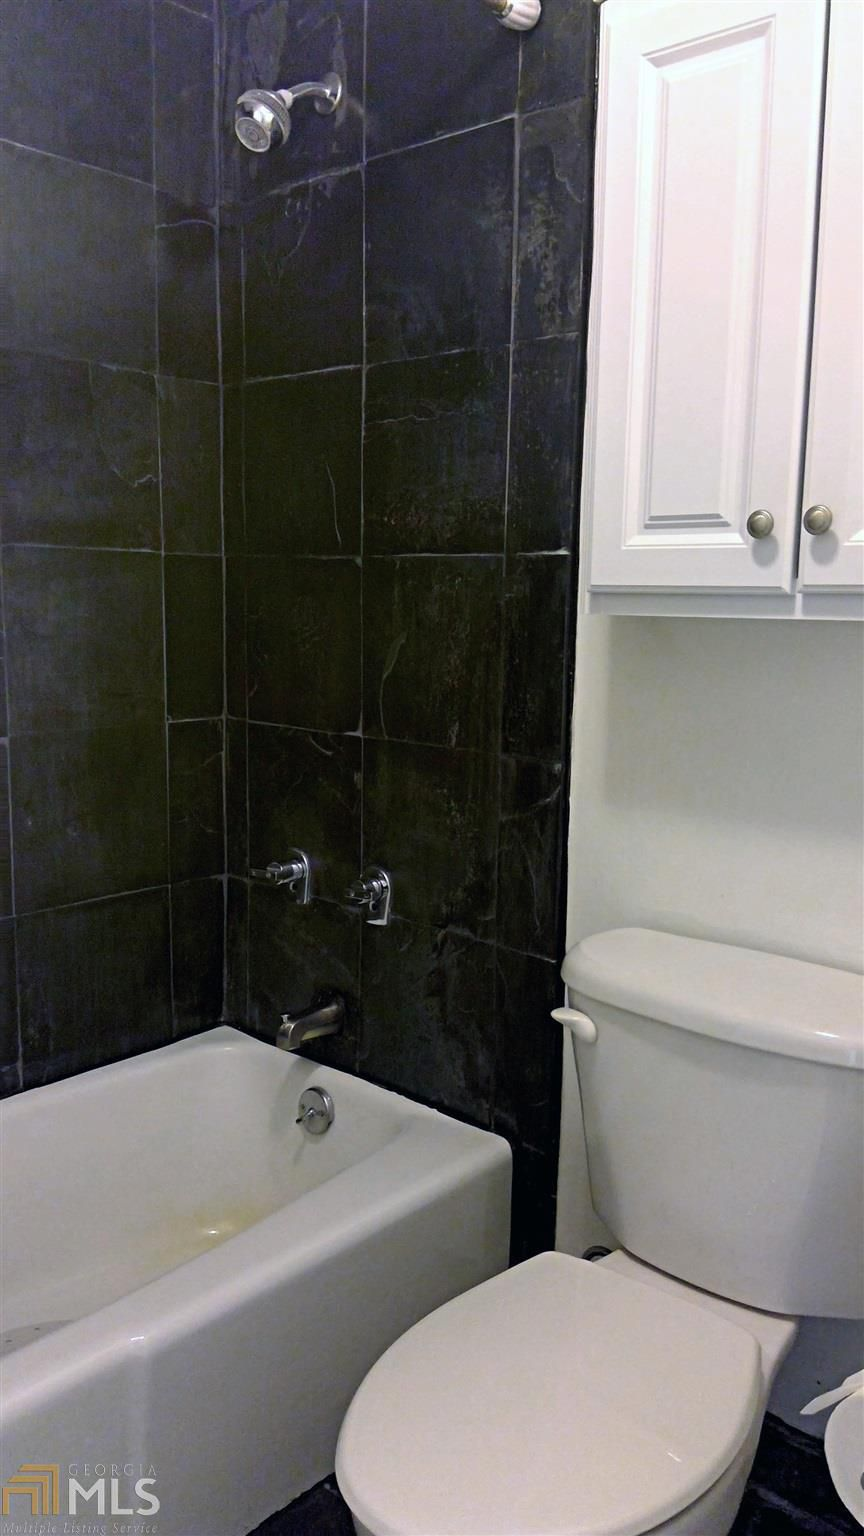 A shower with black tile and a white toilet at right.